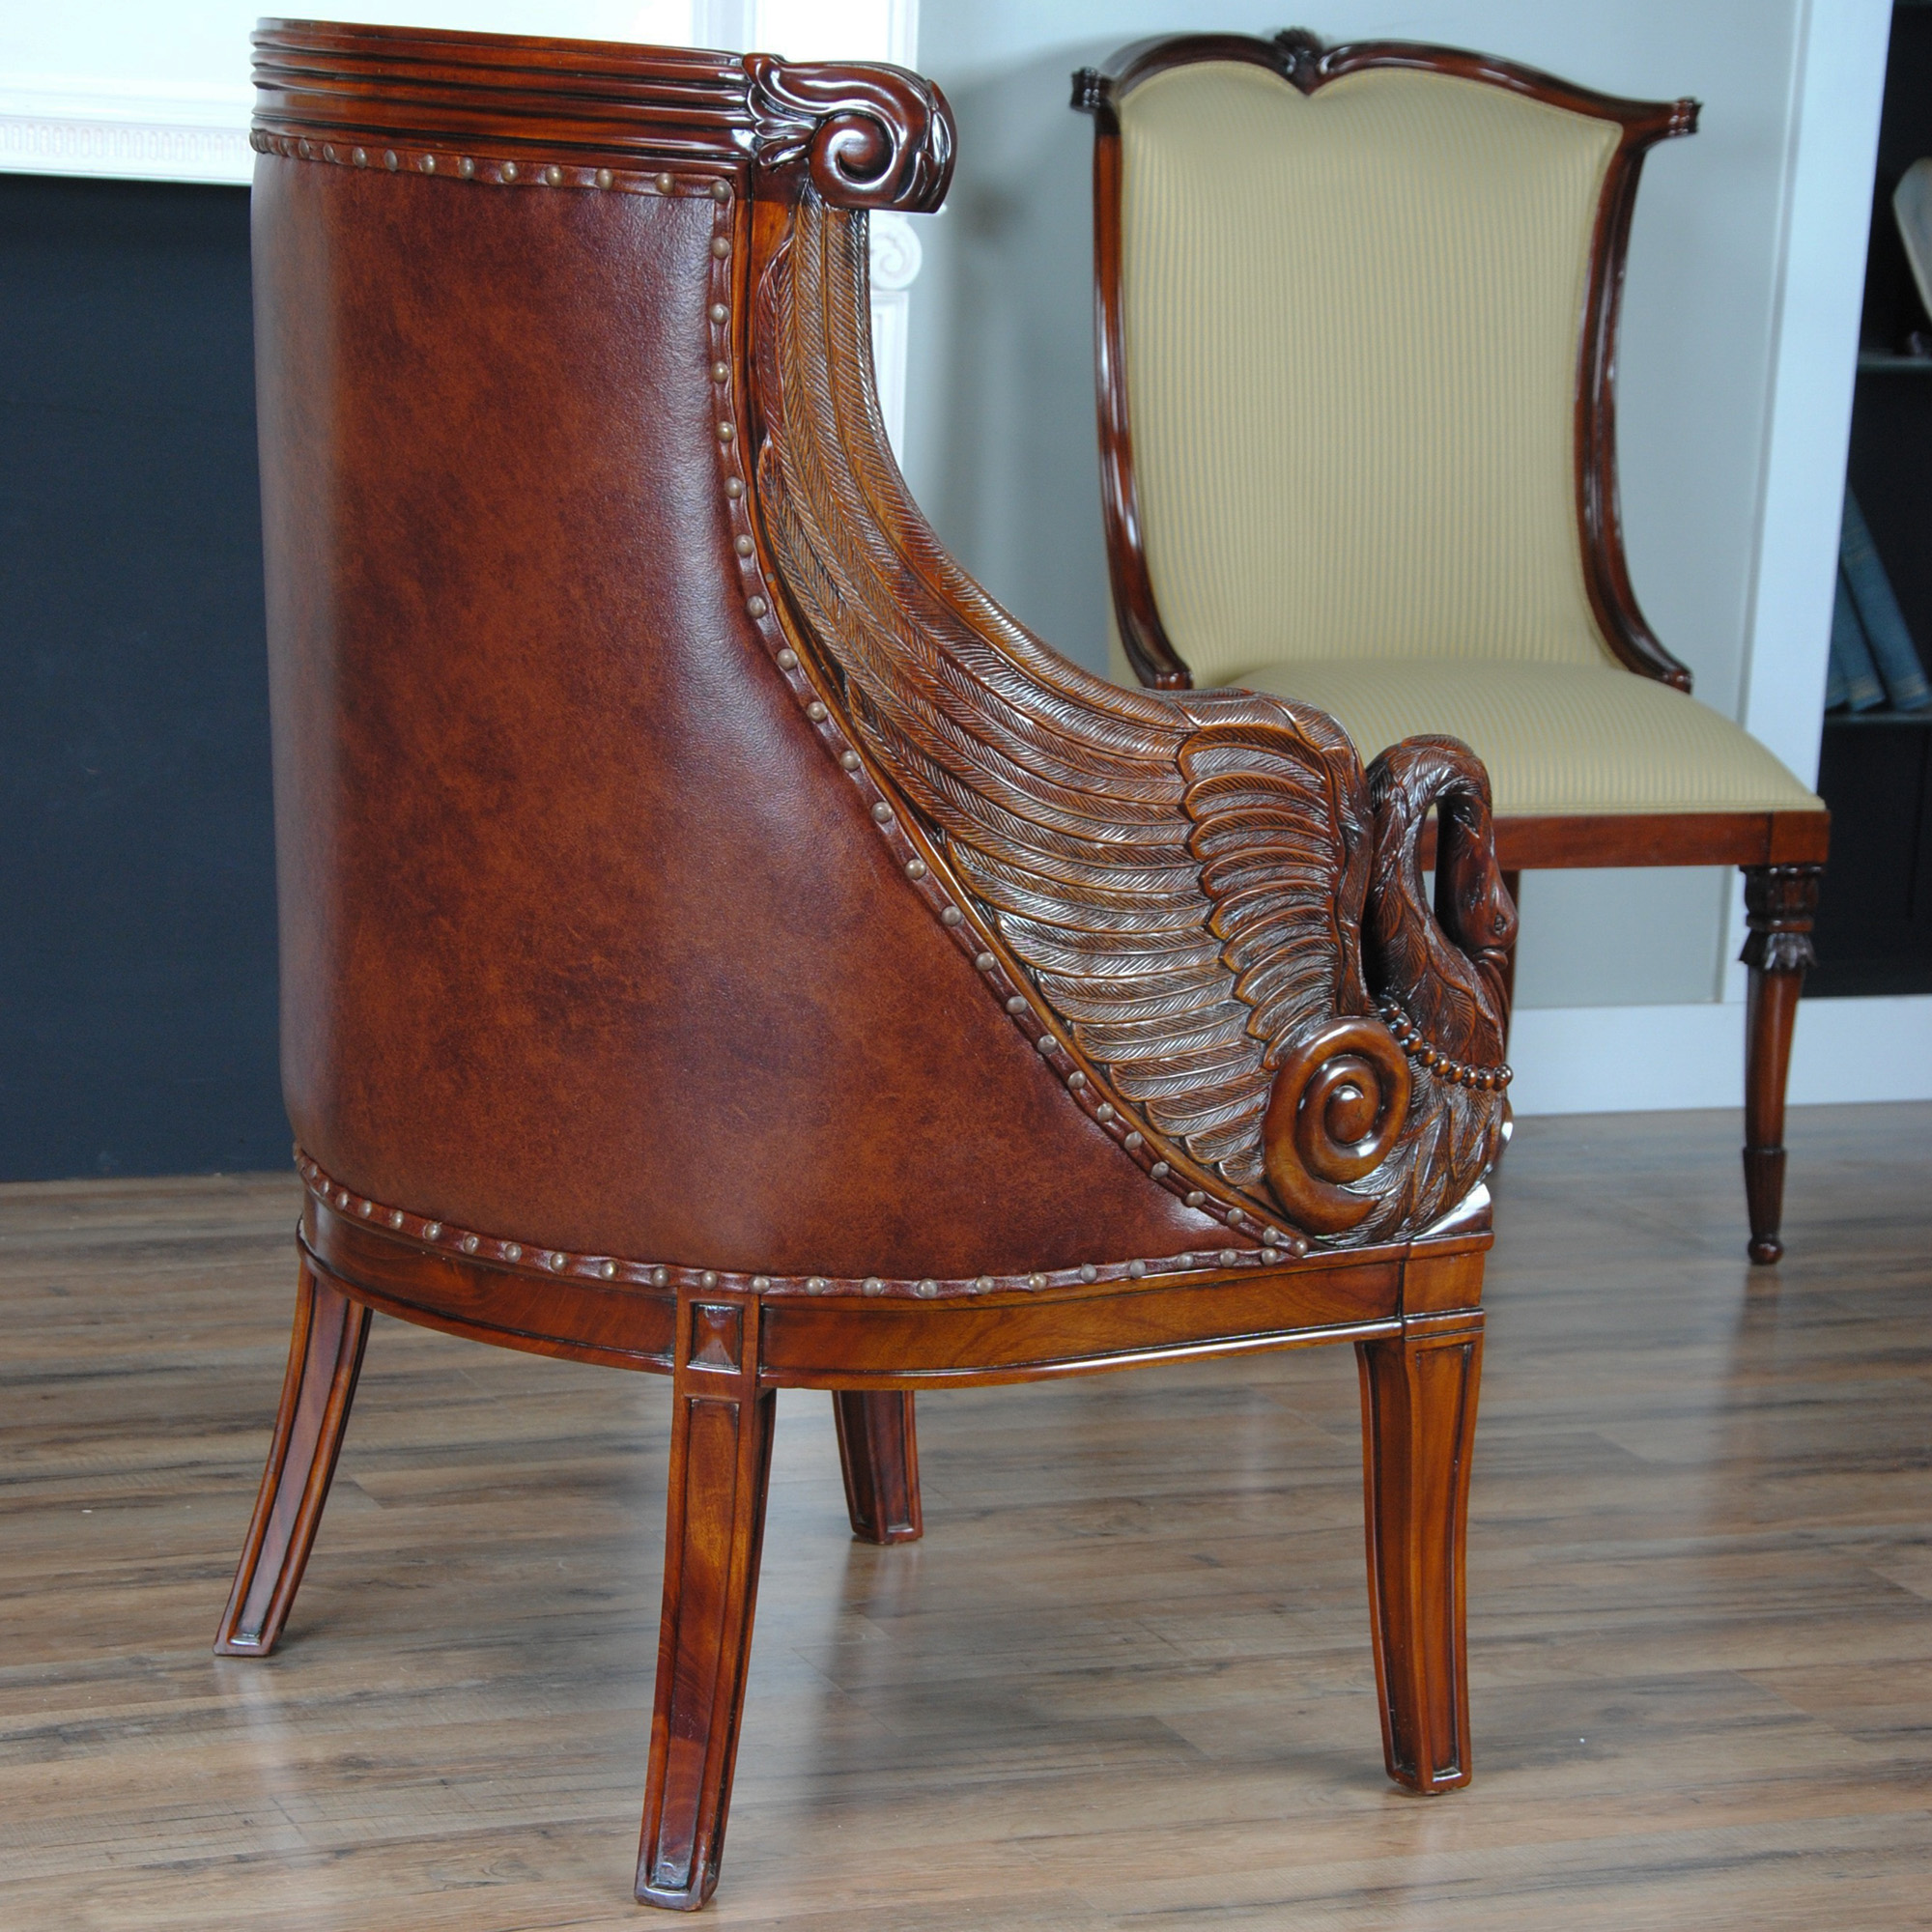 Swan Chair Leather Swan Arm Chair, Niagara Furniture, Genuine Leather